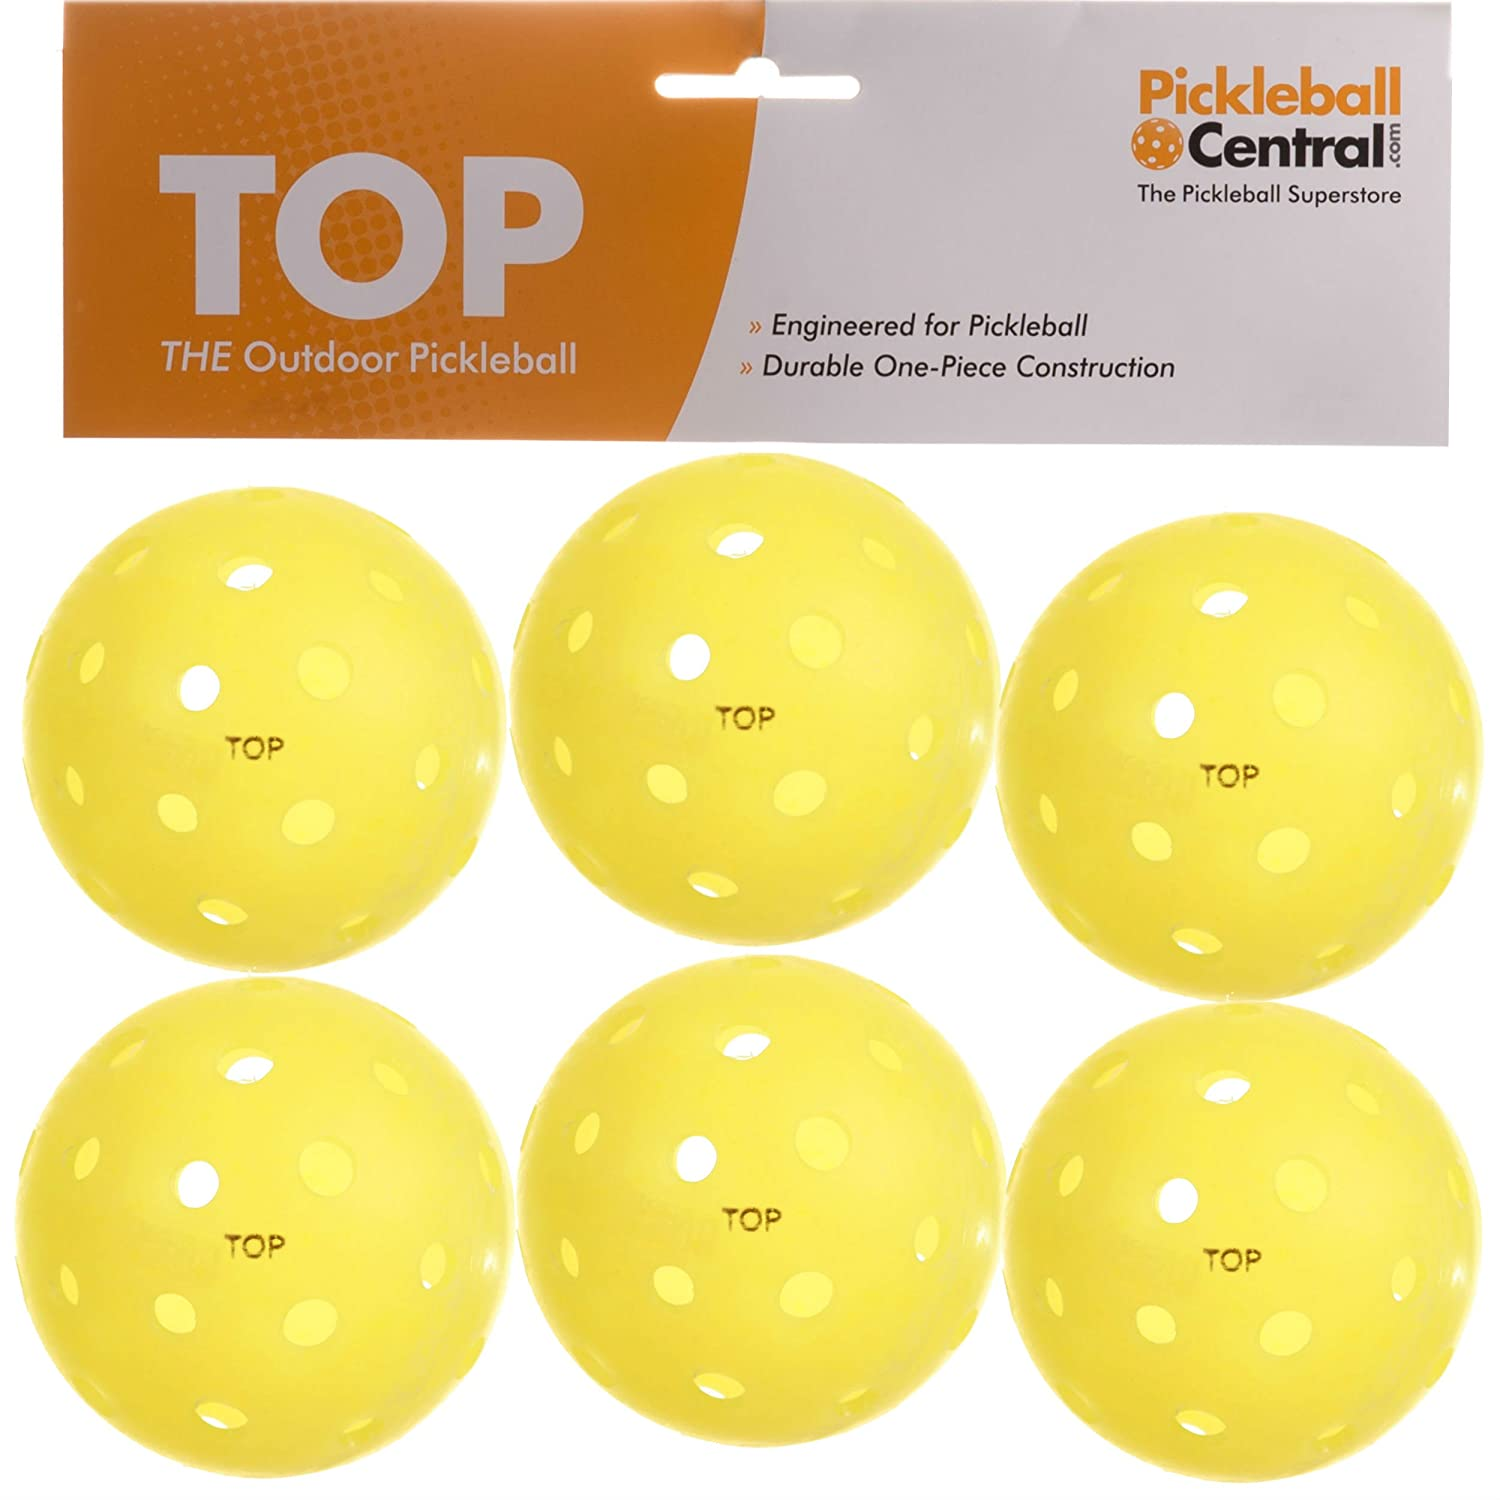 TOP ball (The Outdoor Pickleball) -6 count yellow by PickleballCentral 5M-DOUL-JNT4